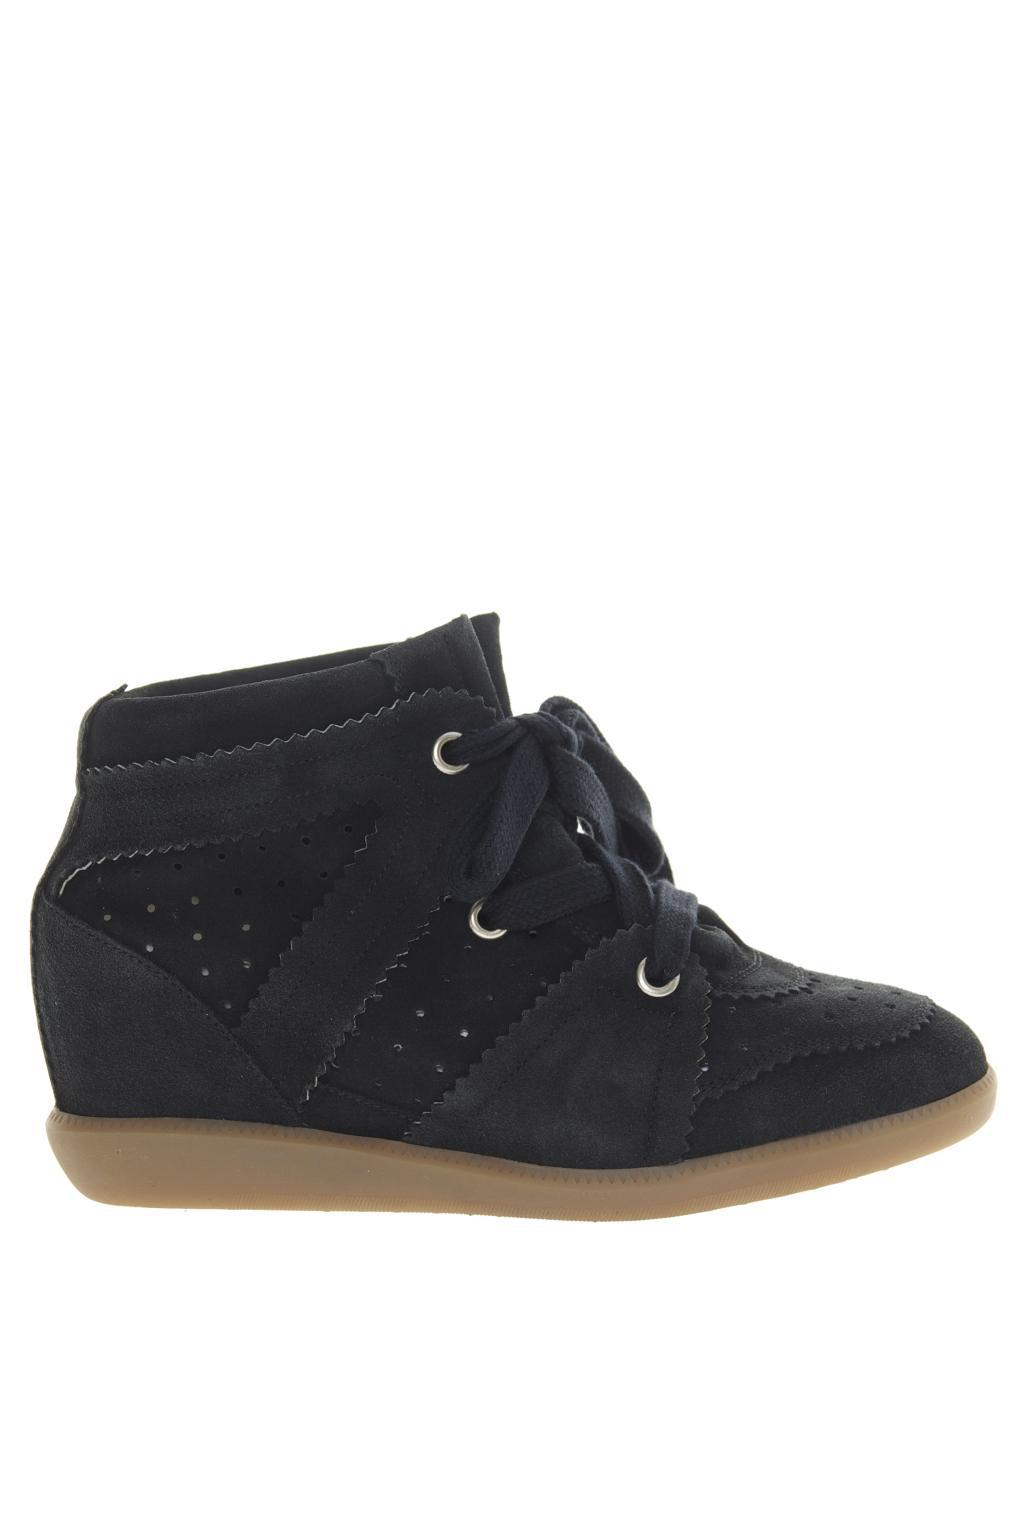 5d3427e14890 Lyst - Étoile Isabel Marant Wedge  bobby  Sneakers in Black